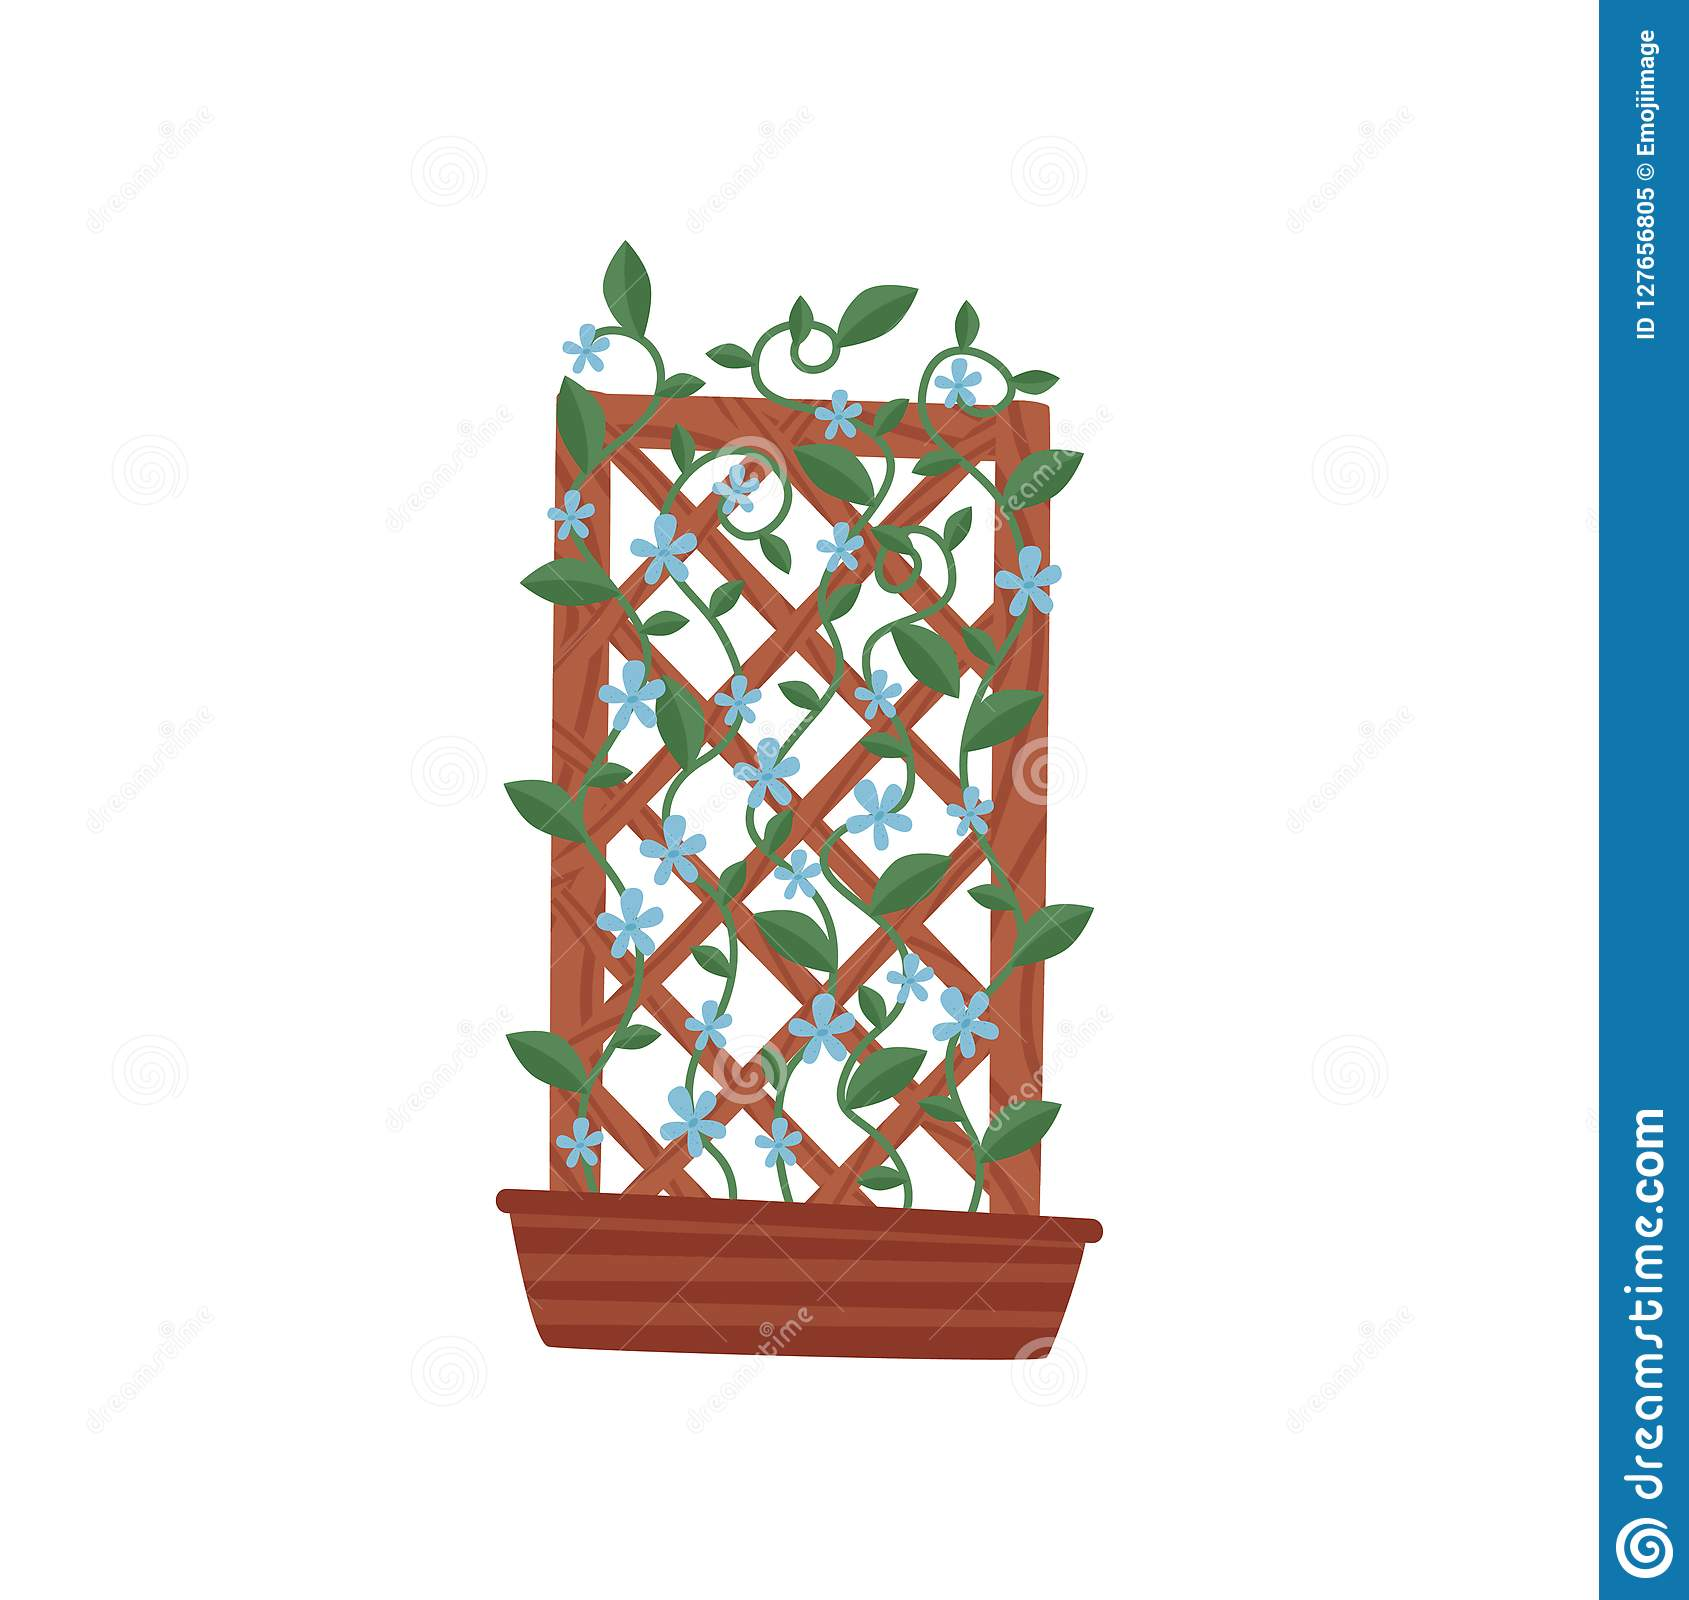 Climbing Plant With Small Blue Flowers In Brown Pot With Wooden